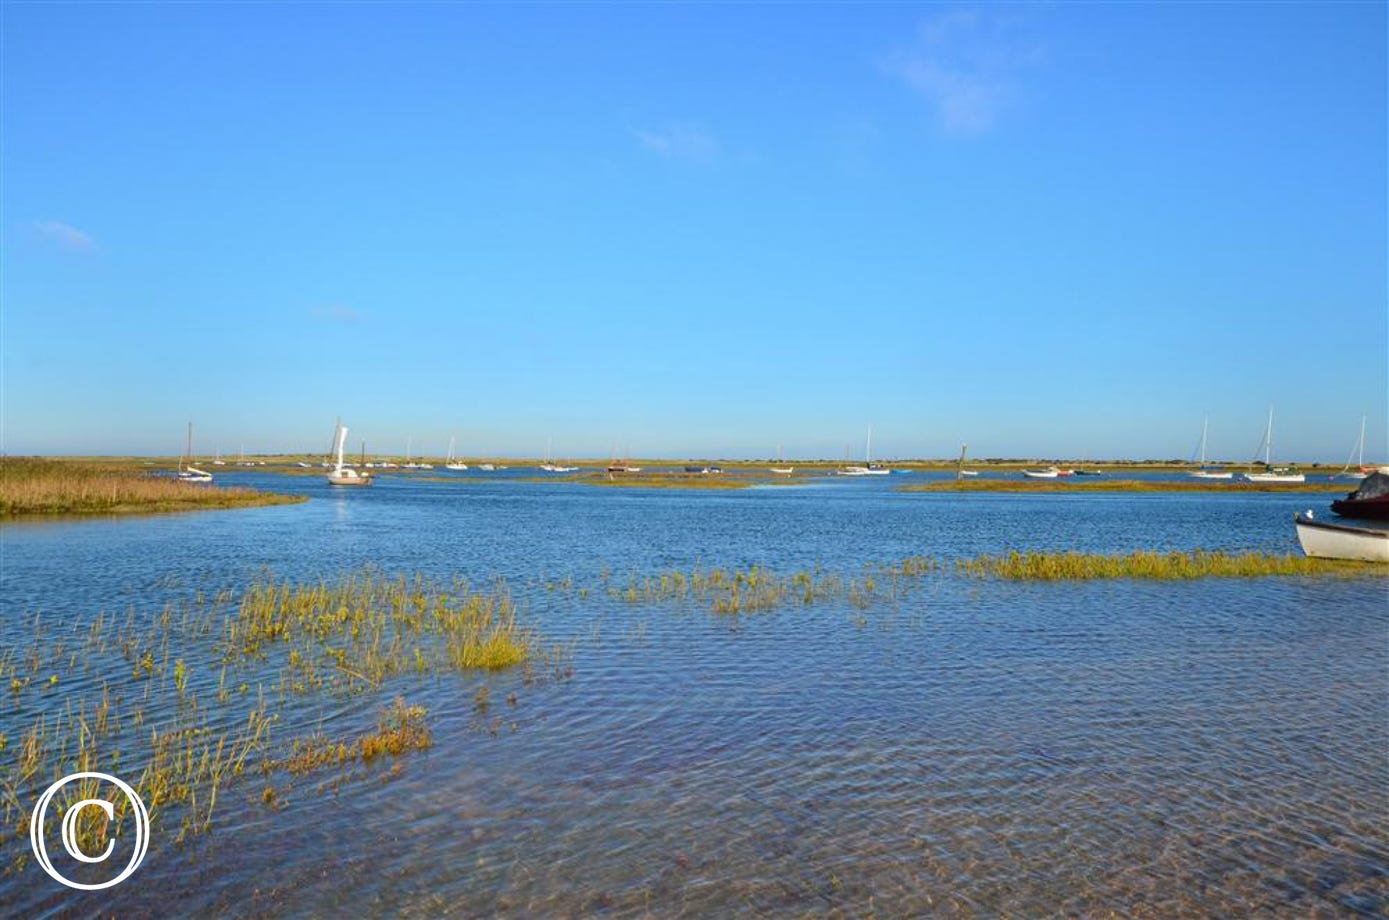 The Staithe is a popular place with sailors and birdwatchers at any time of the year